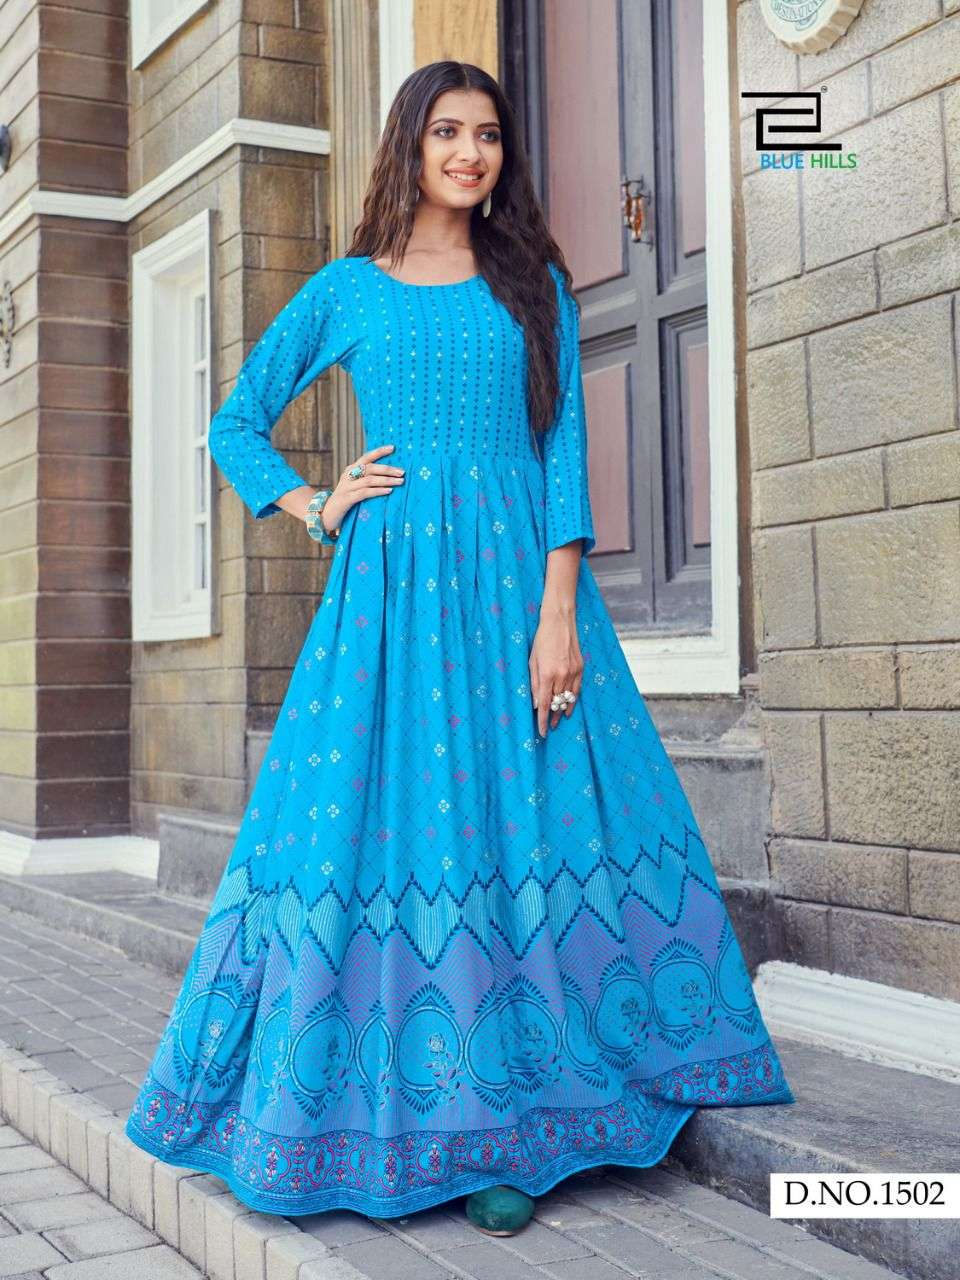 BLUE HILLS WALKWAY VOL 15 RAYON FOIL PRINTED LONG PARTYWEAR GOWNS WHOLESALE